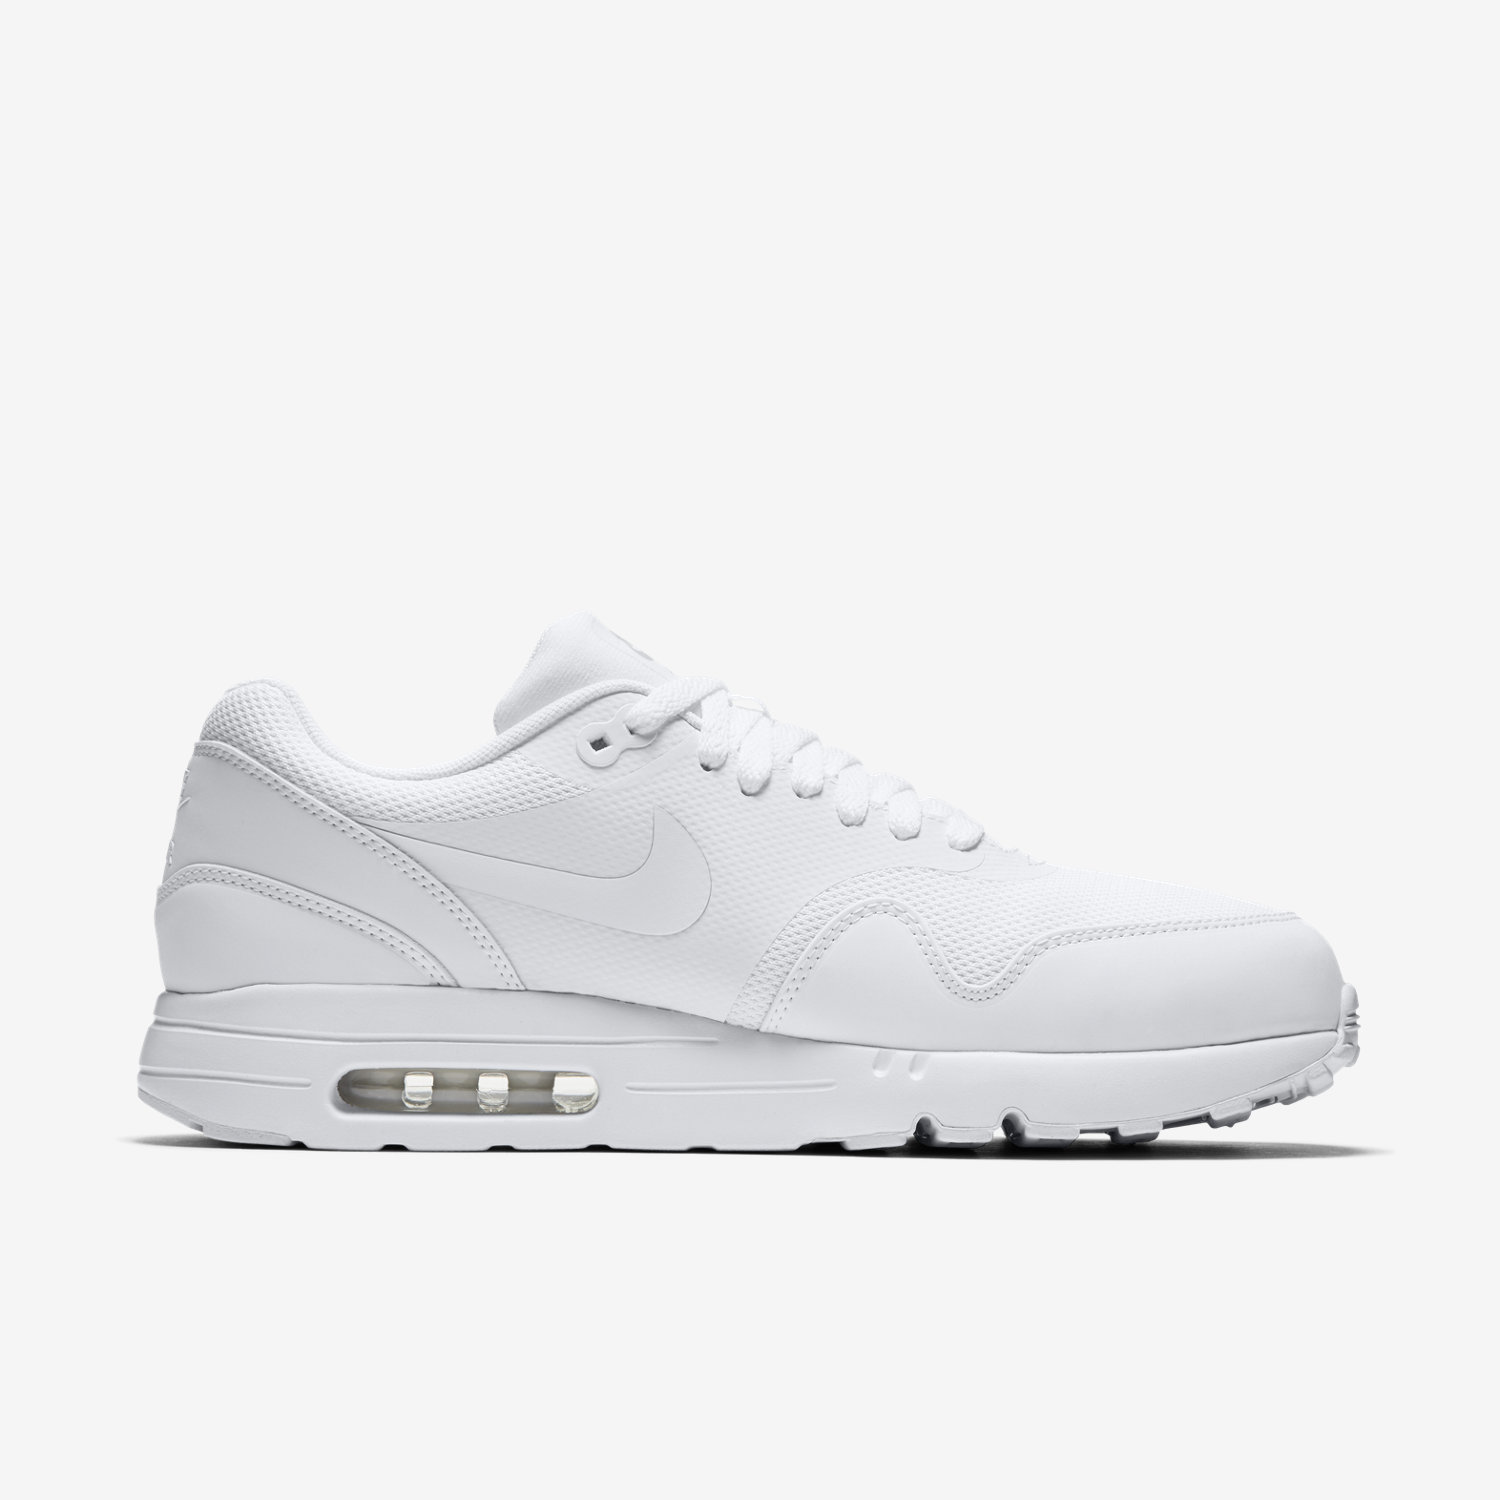 shades of 2018 sneakers for whole family Nike Air Max 1 Ultra Essential Triple White leoncamier.co.uk